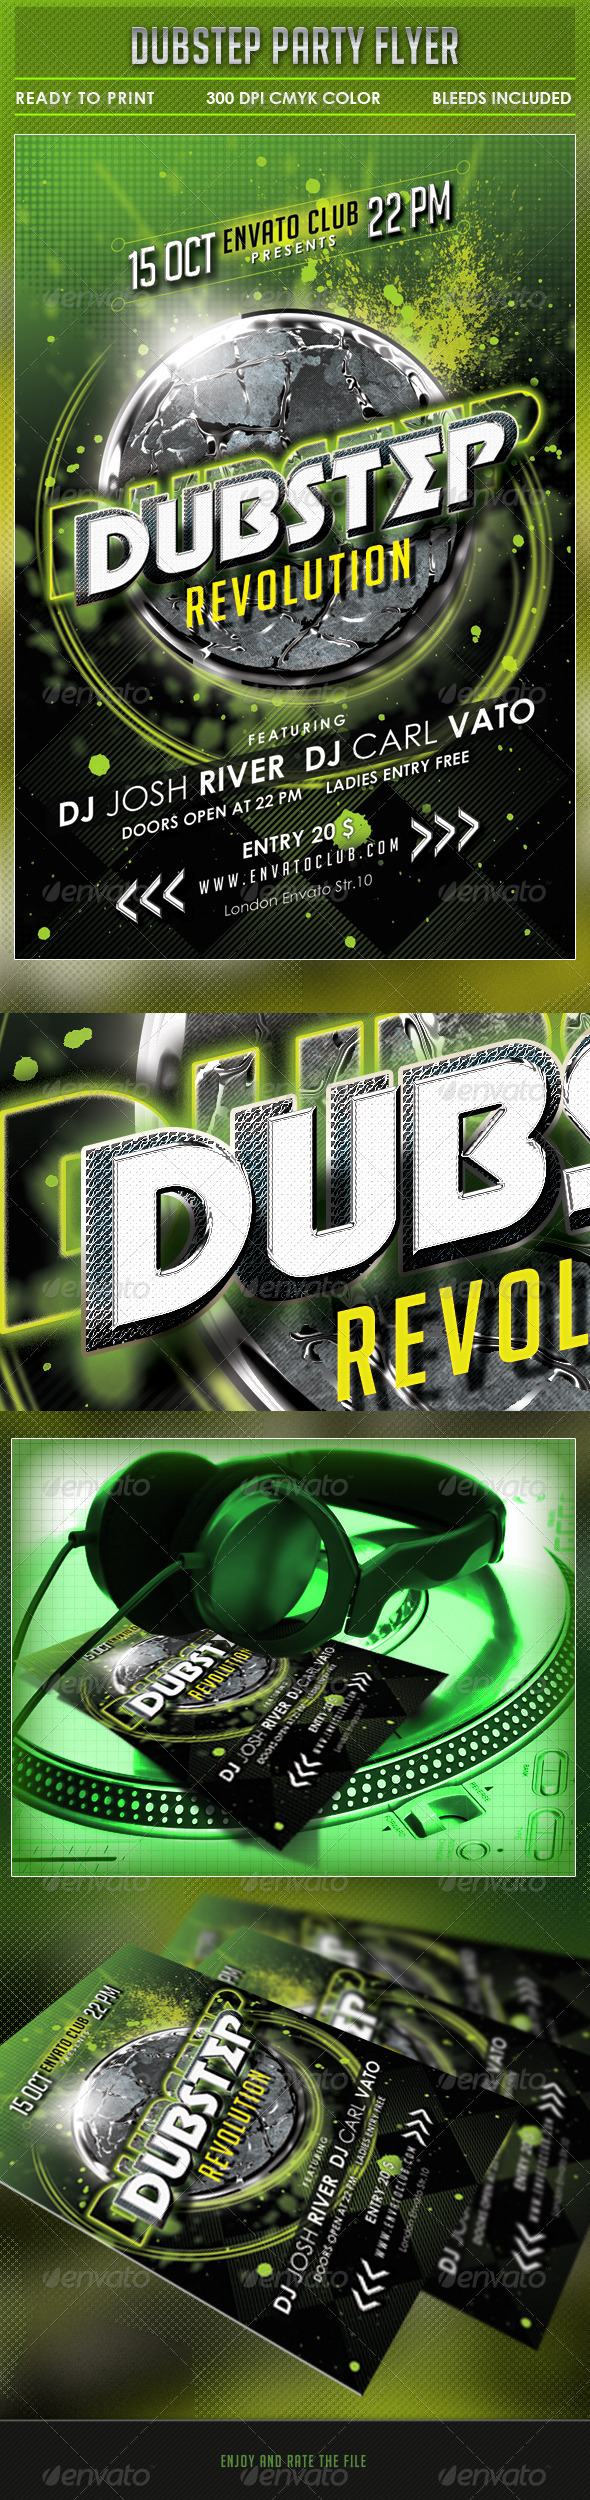 GraphicRiver Dubstep Party Flyer 5449194